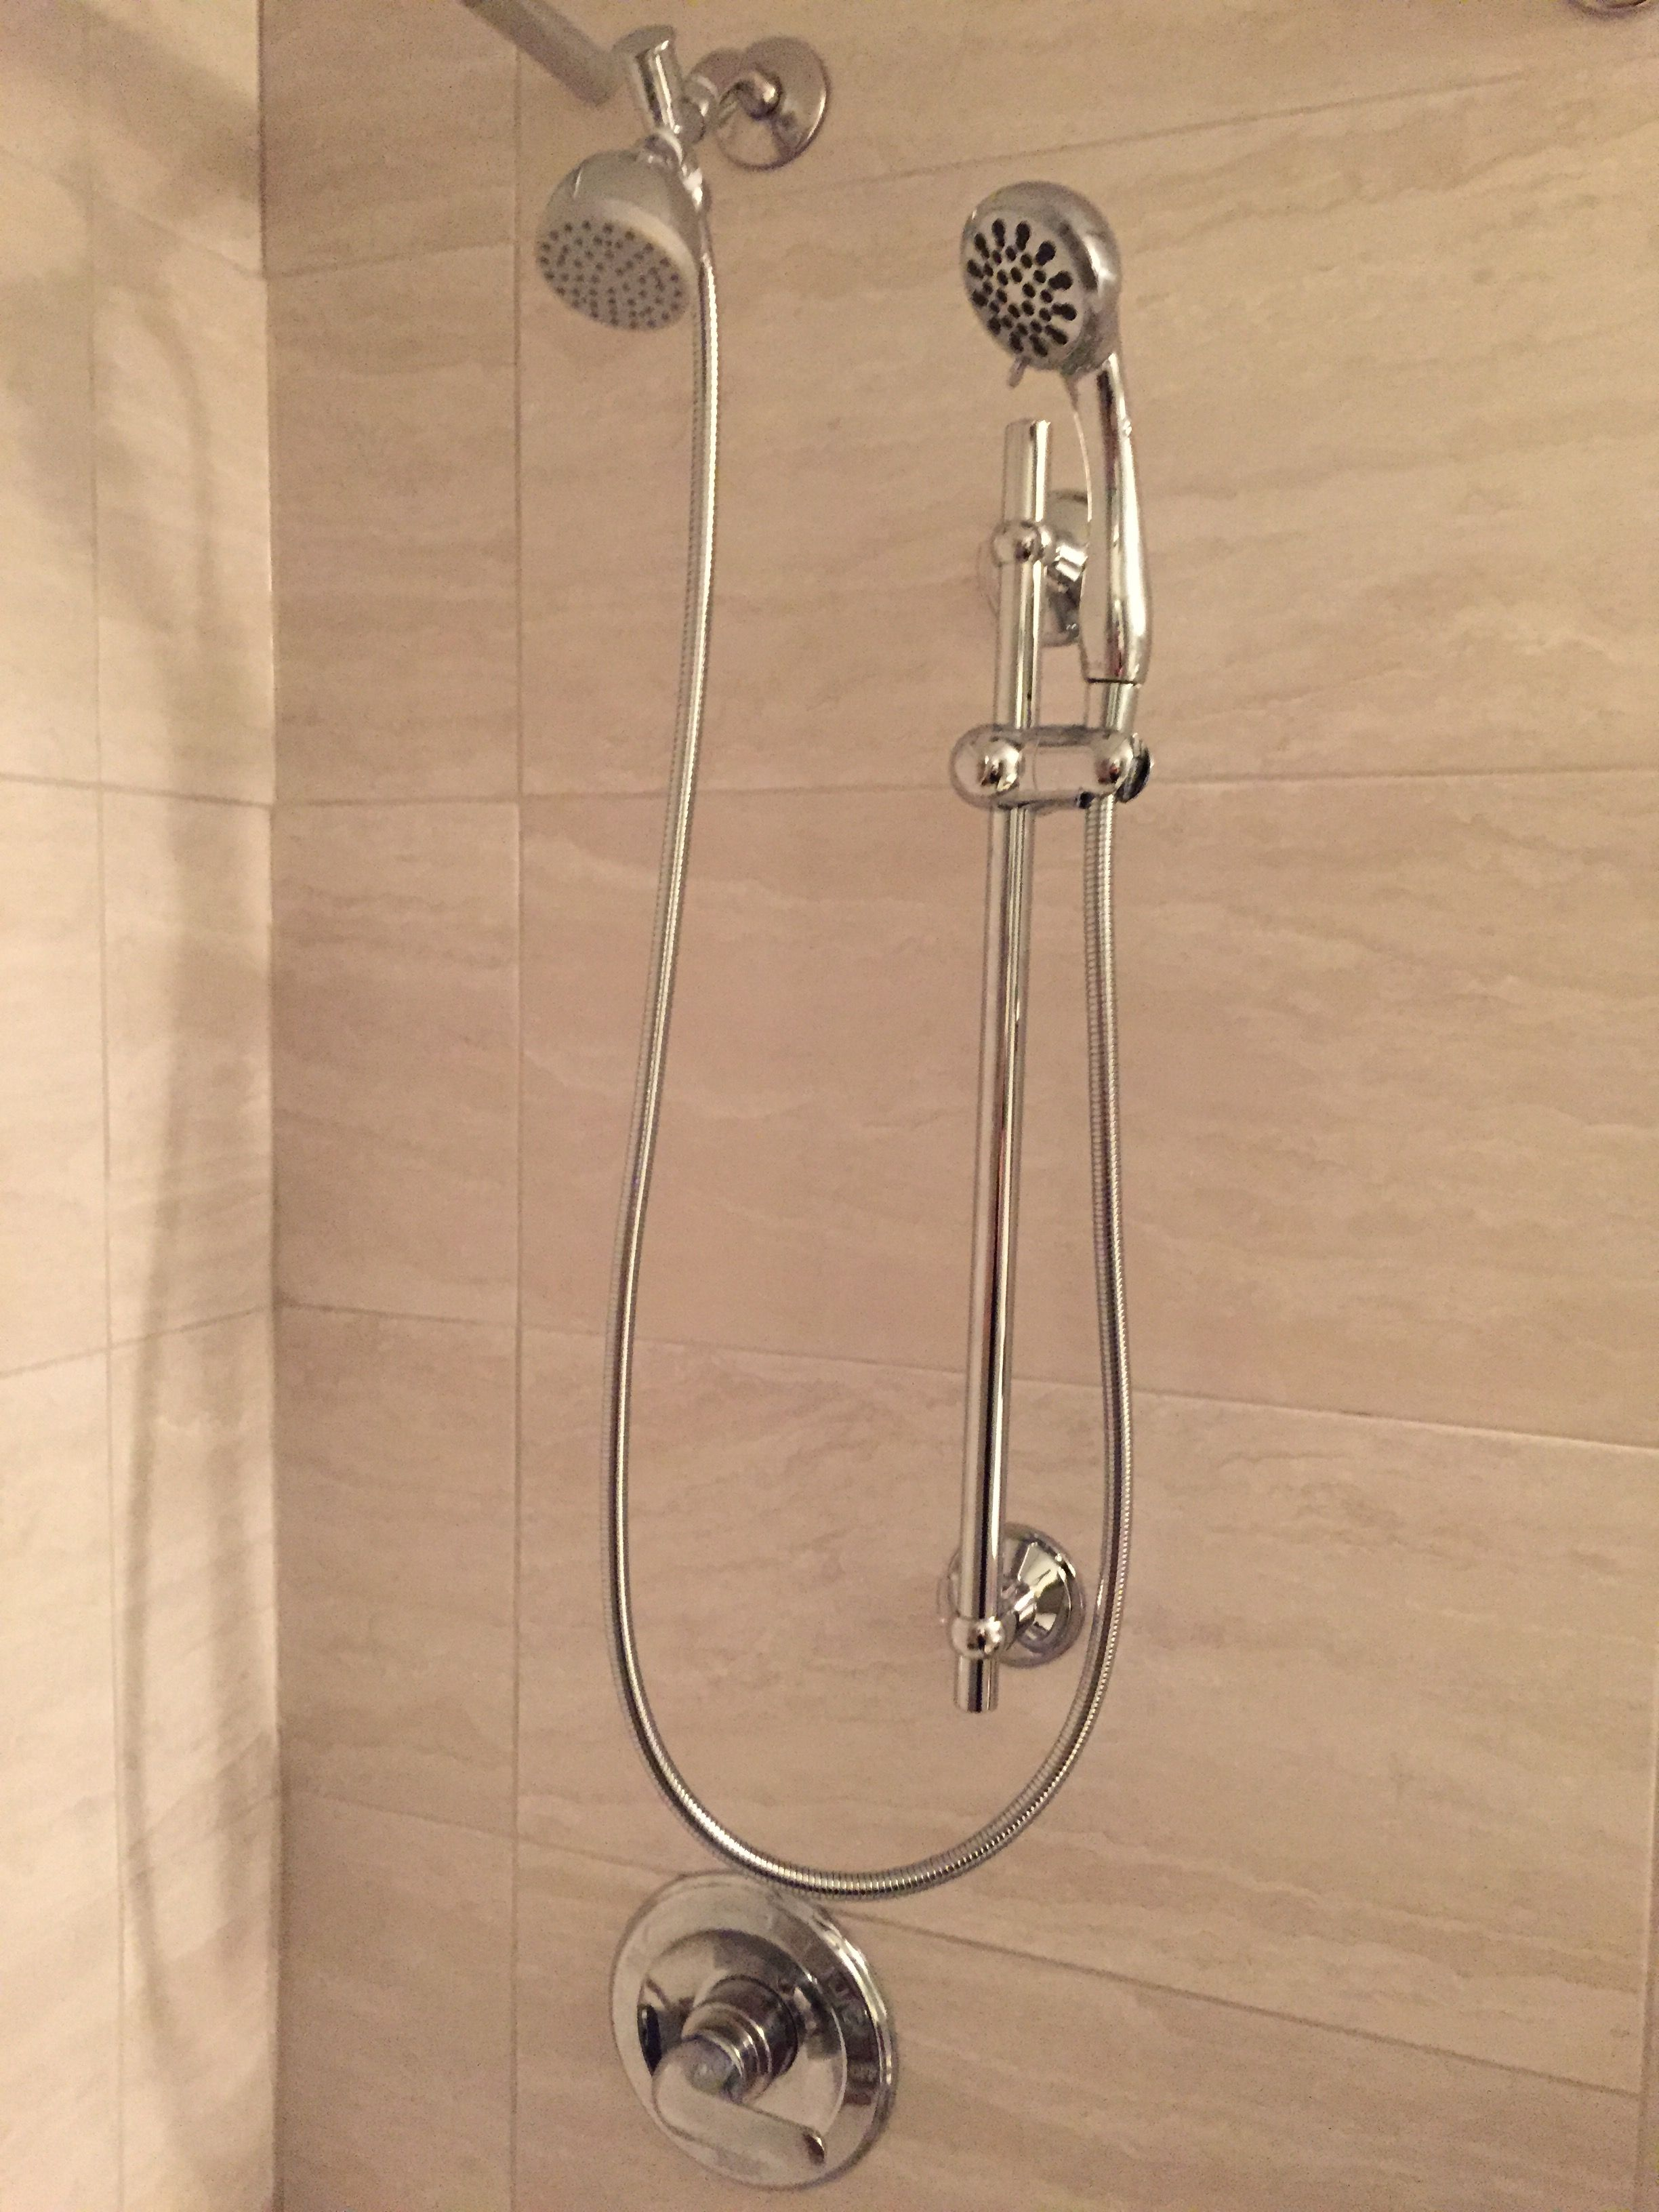 Amazing Regular Shower Head And Hand Held Shower Head On Slide Bar. Love It!